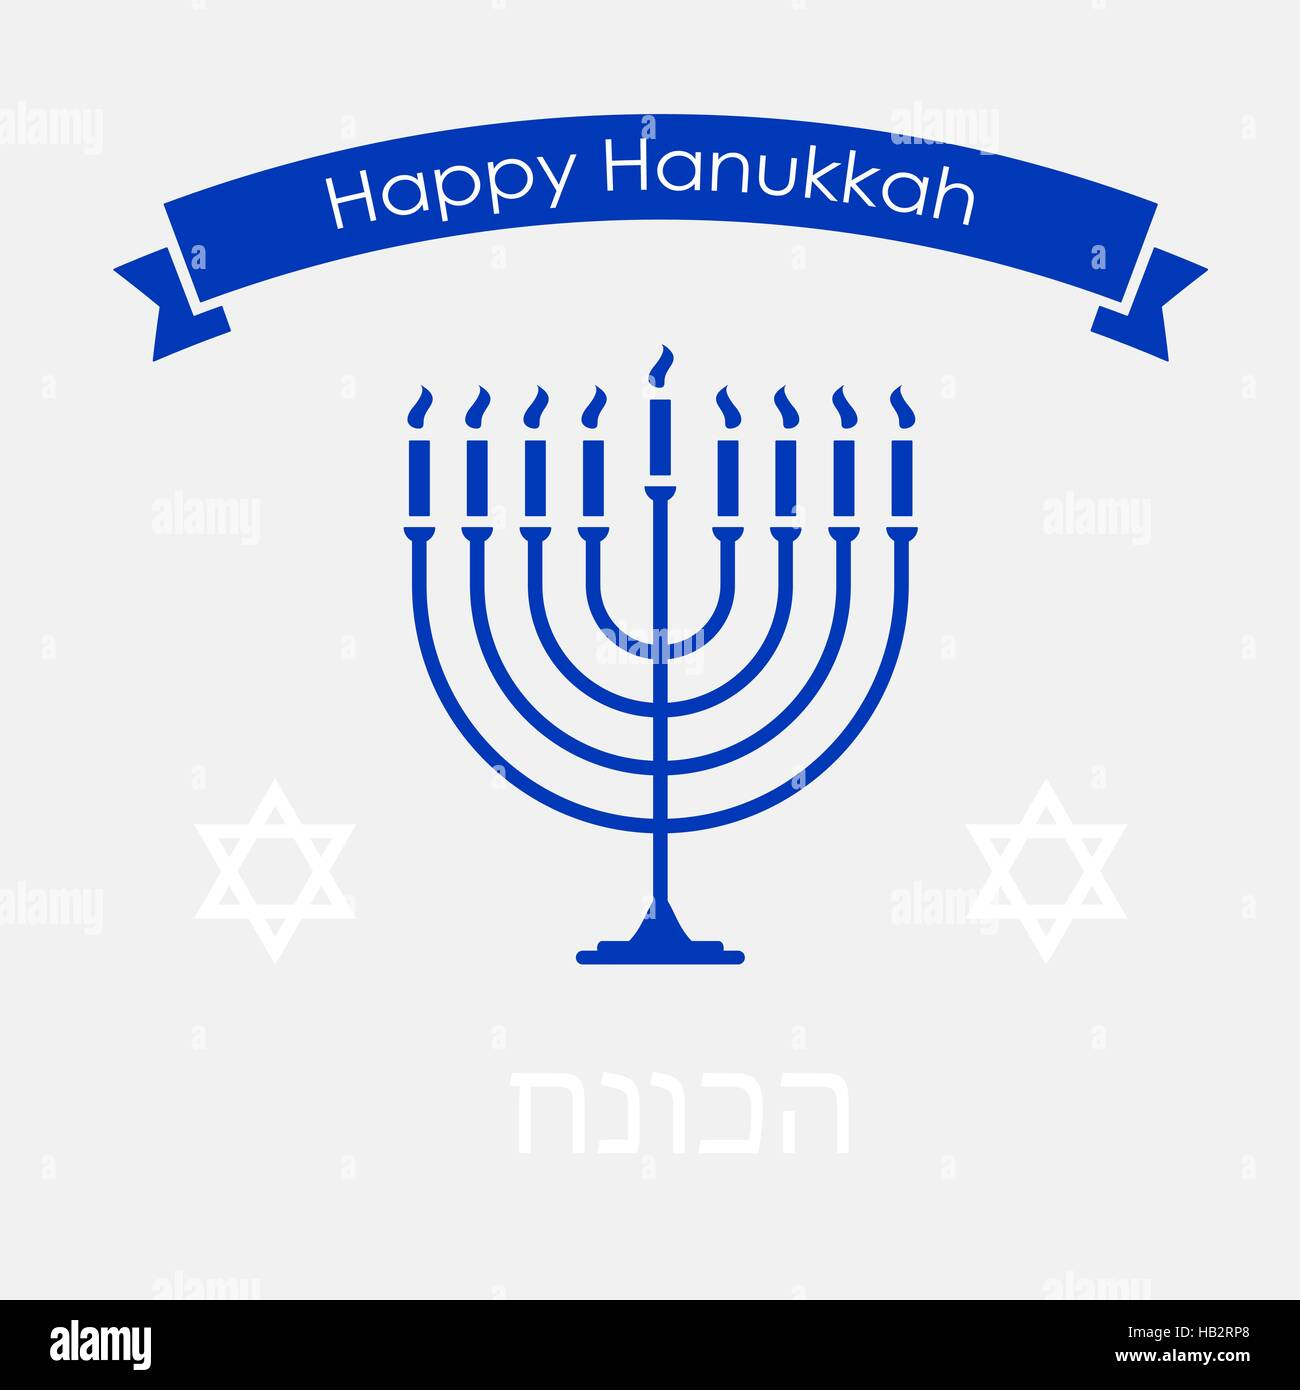 Happy Hanukkah Jewish Tradition Holiday Greeting Symbol Judaism